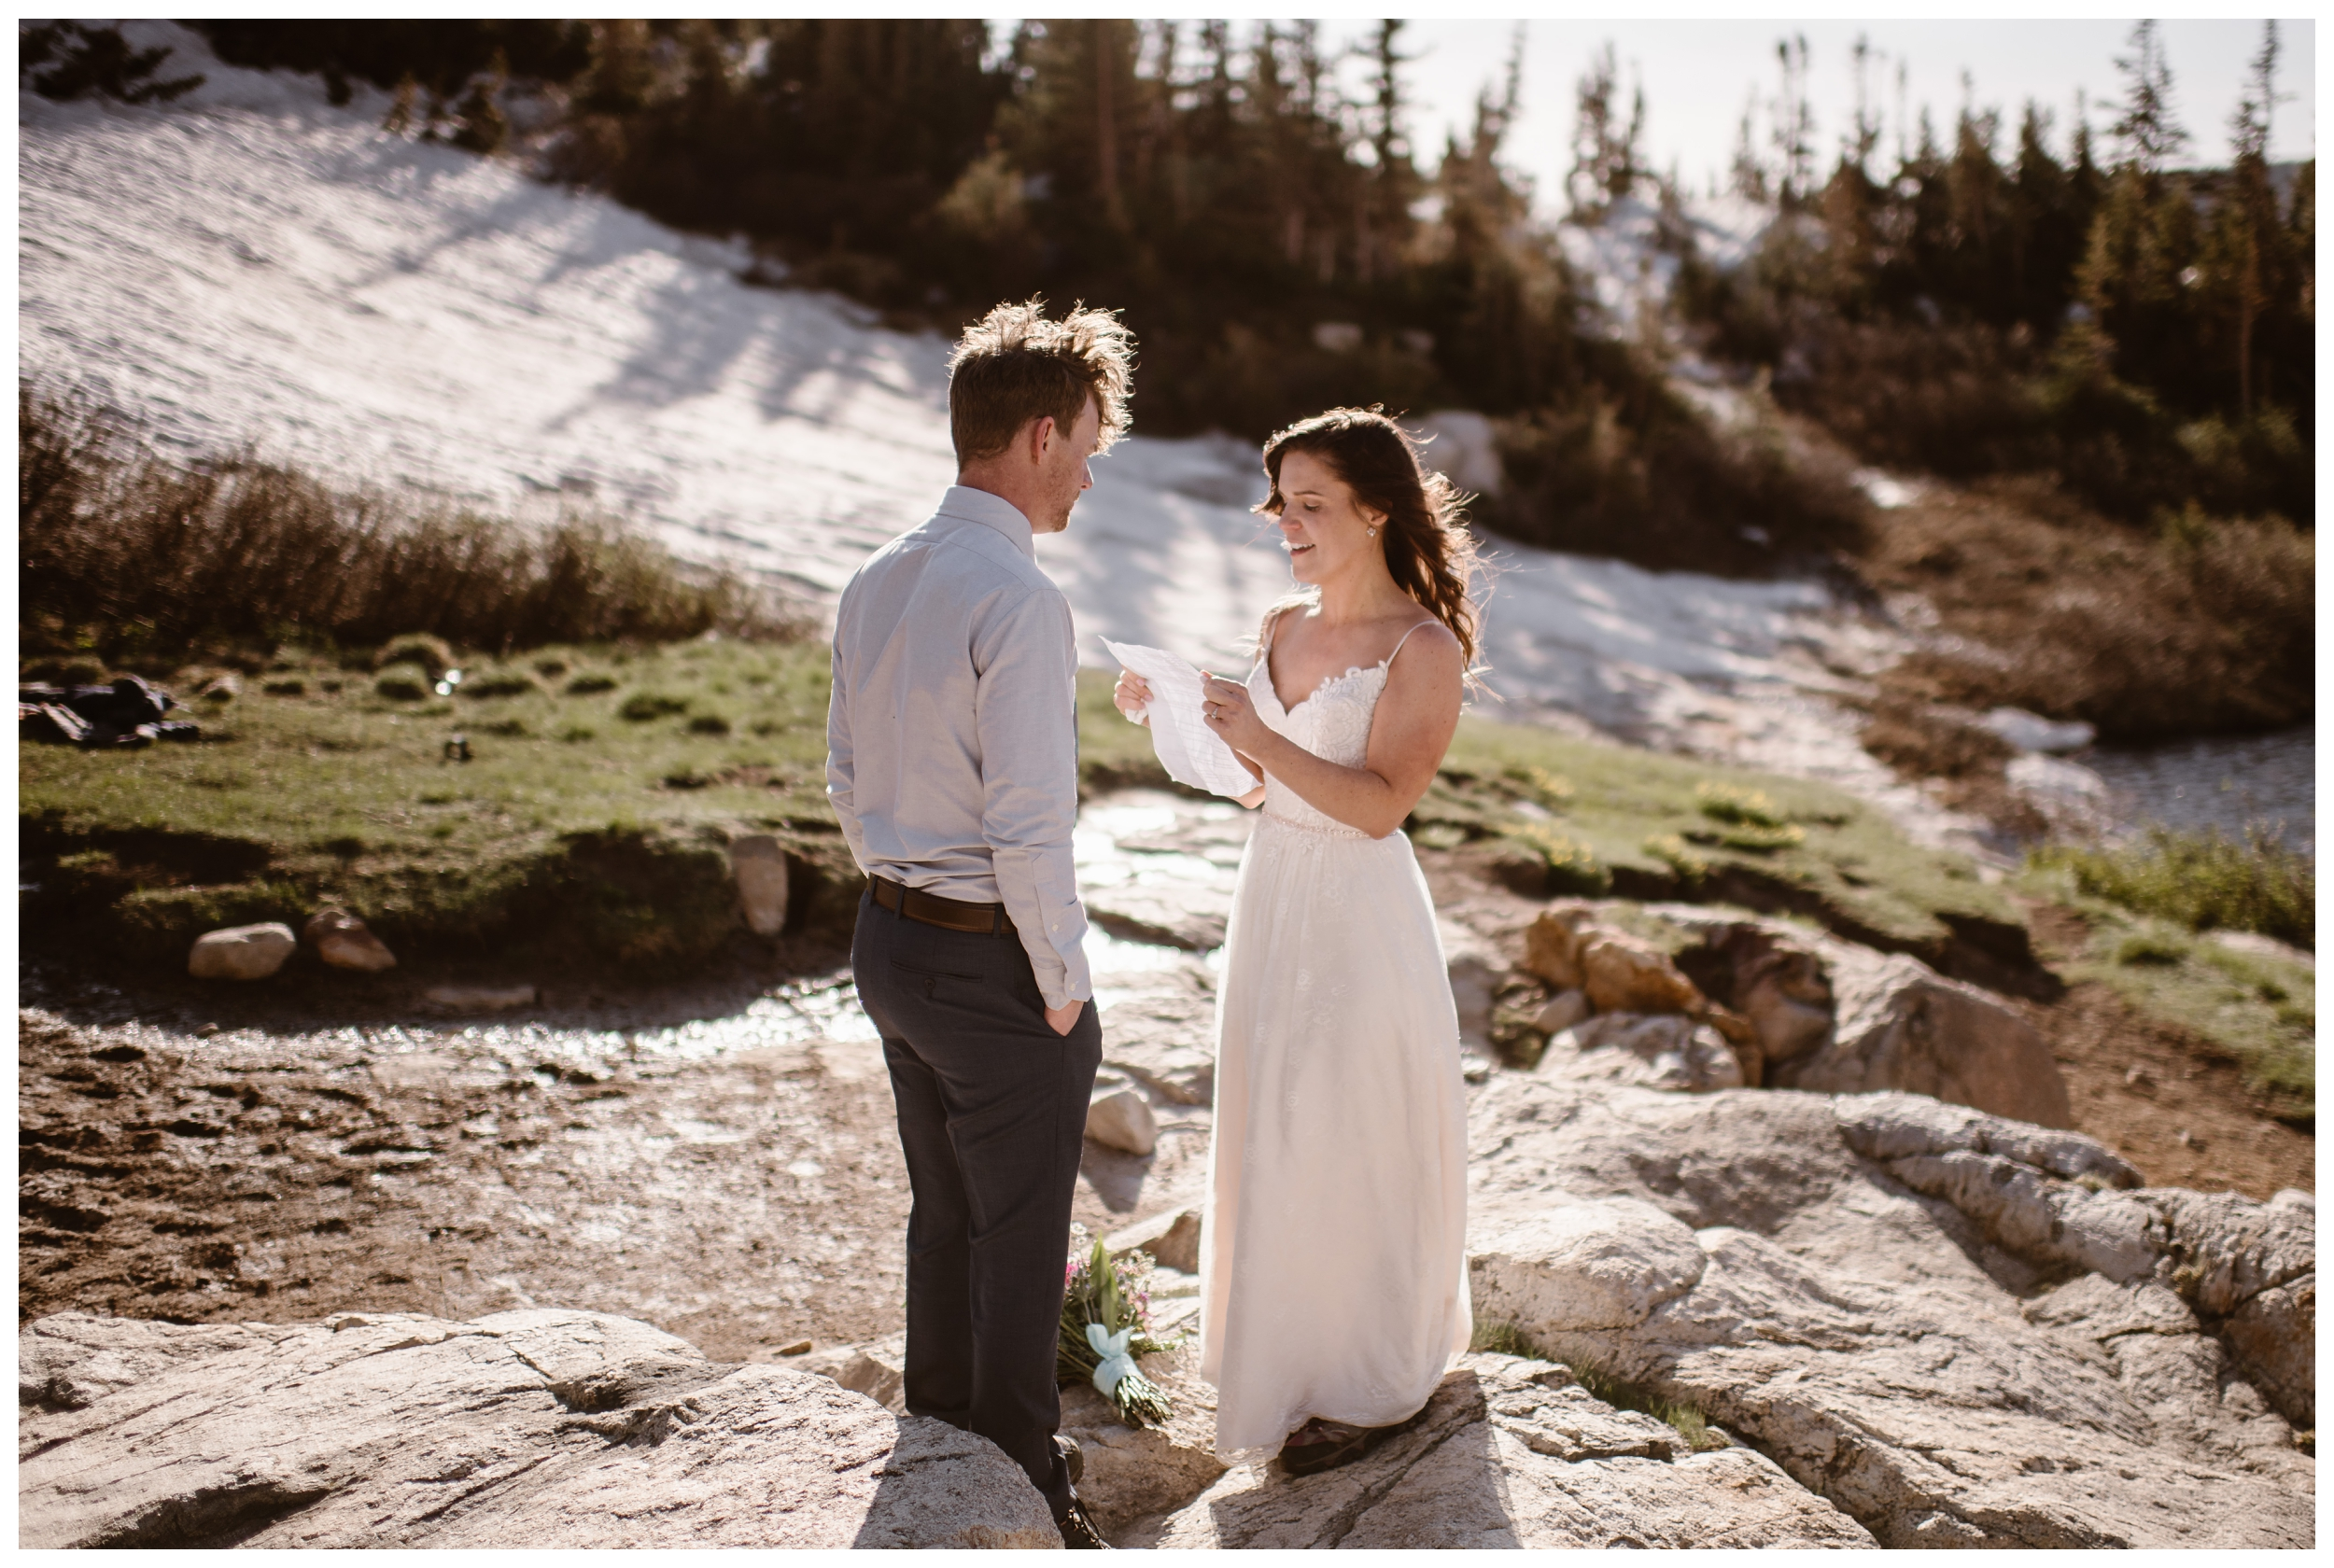 As the sun starts to rise above Lake Isabelle in Nederland, Colorado, Karen and Matt read their vows to each other during their private self solemnizing adventure elopement ceremony. Photo by Adventure Instead, Maddie Mae.